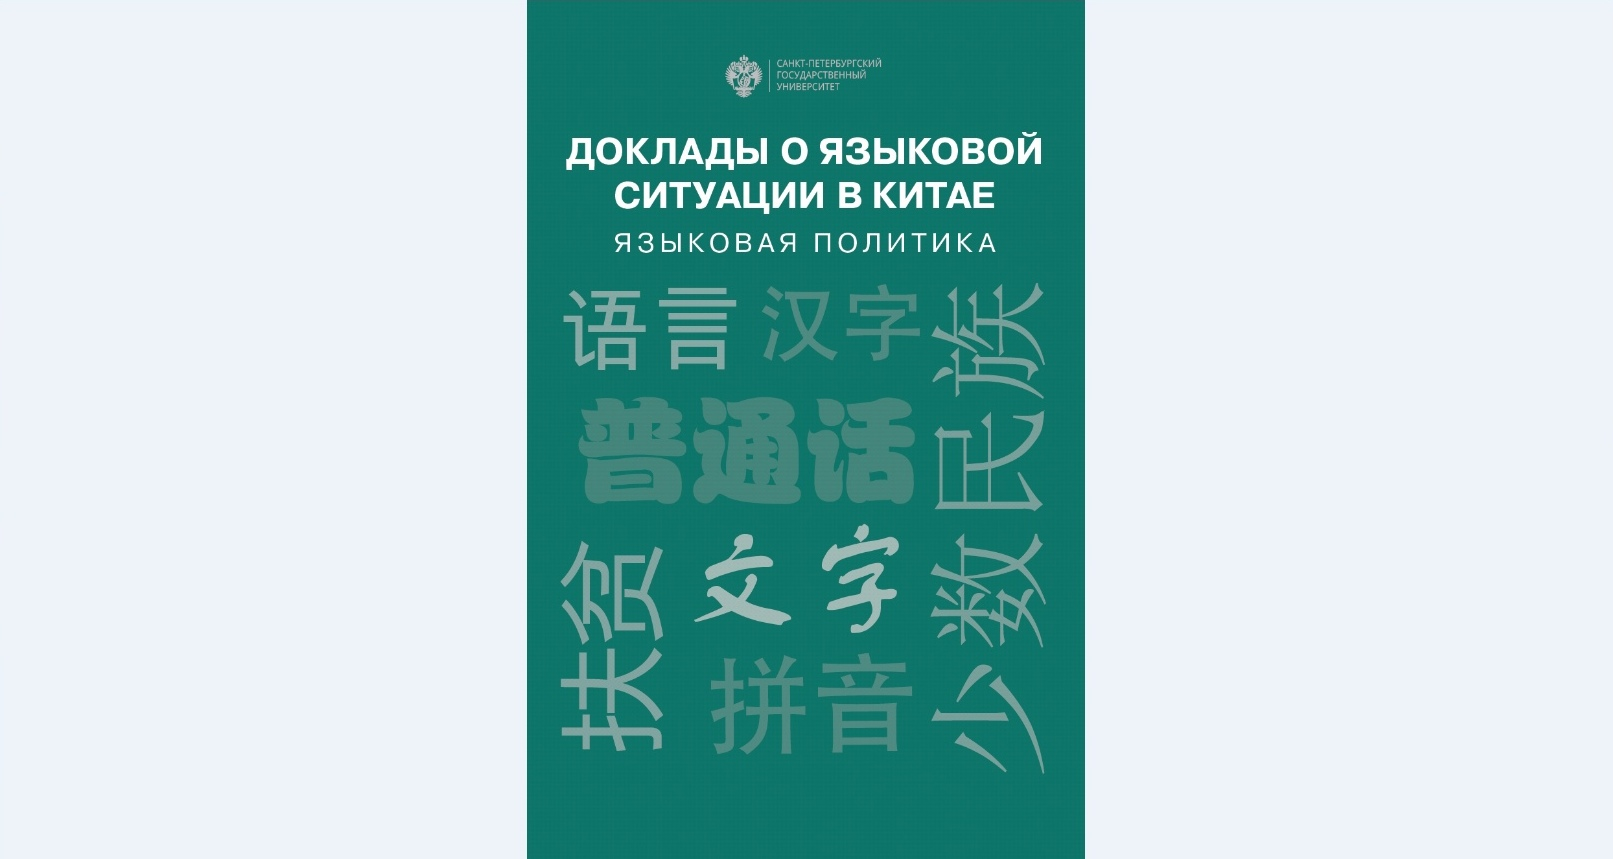 SPbU Publishing House publishes for the first time in Russian 'The Reports on the Language Situation in China: Language Policy' collection of articles